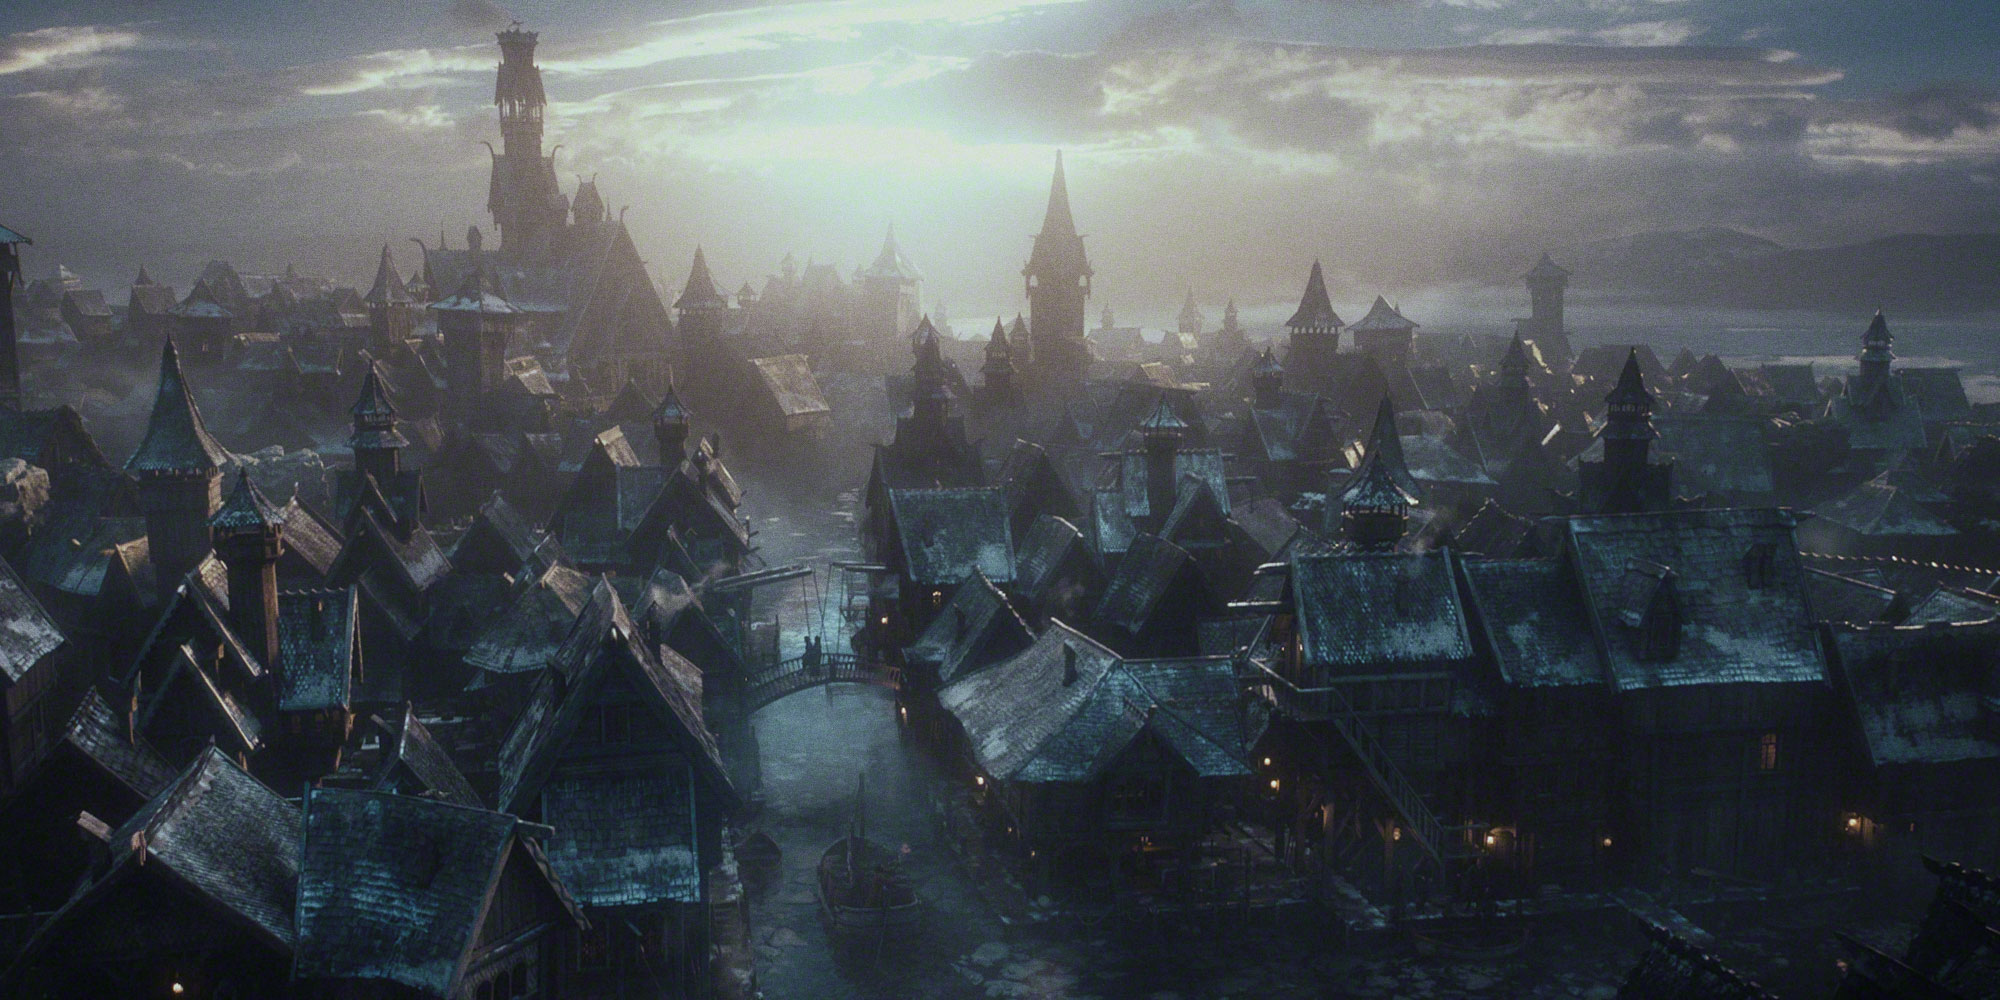 The Hobbit: The Desolation of Smaug - Additional fond d'écran